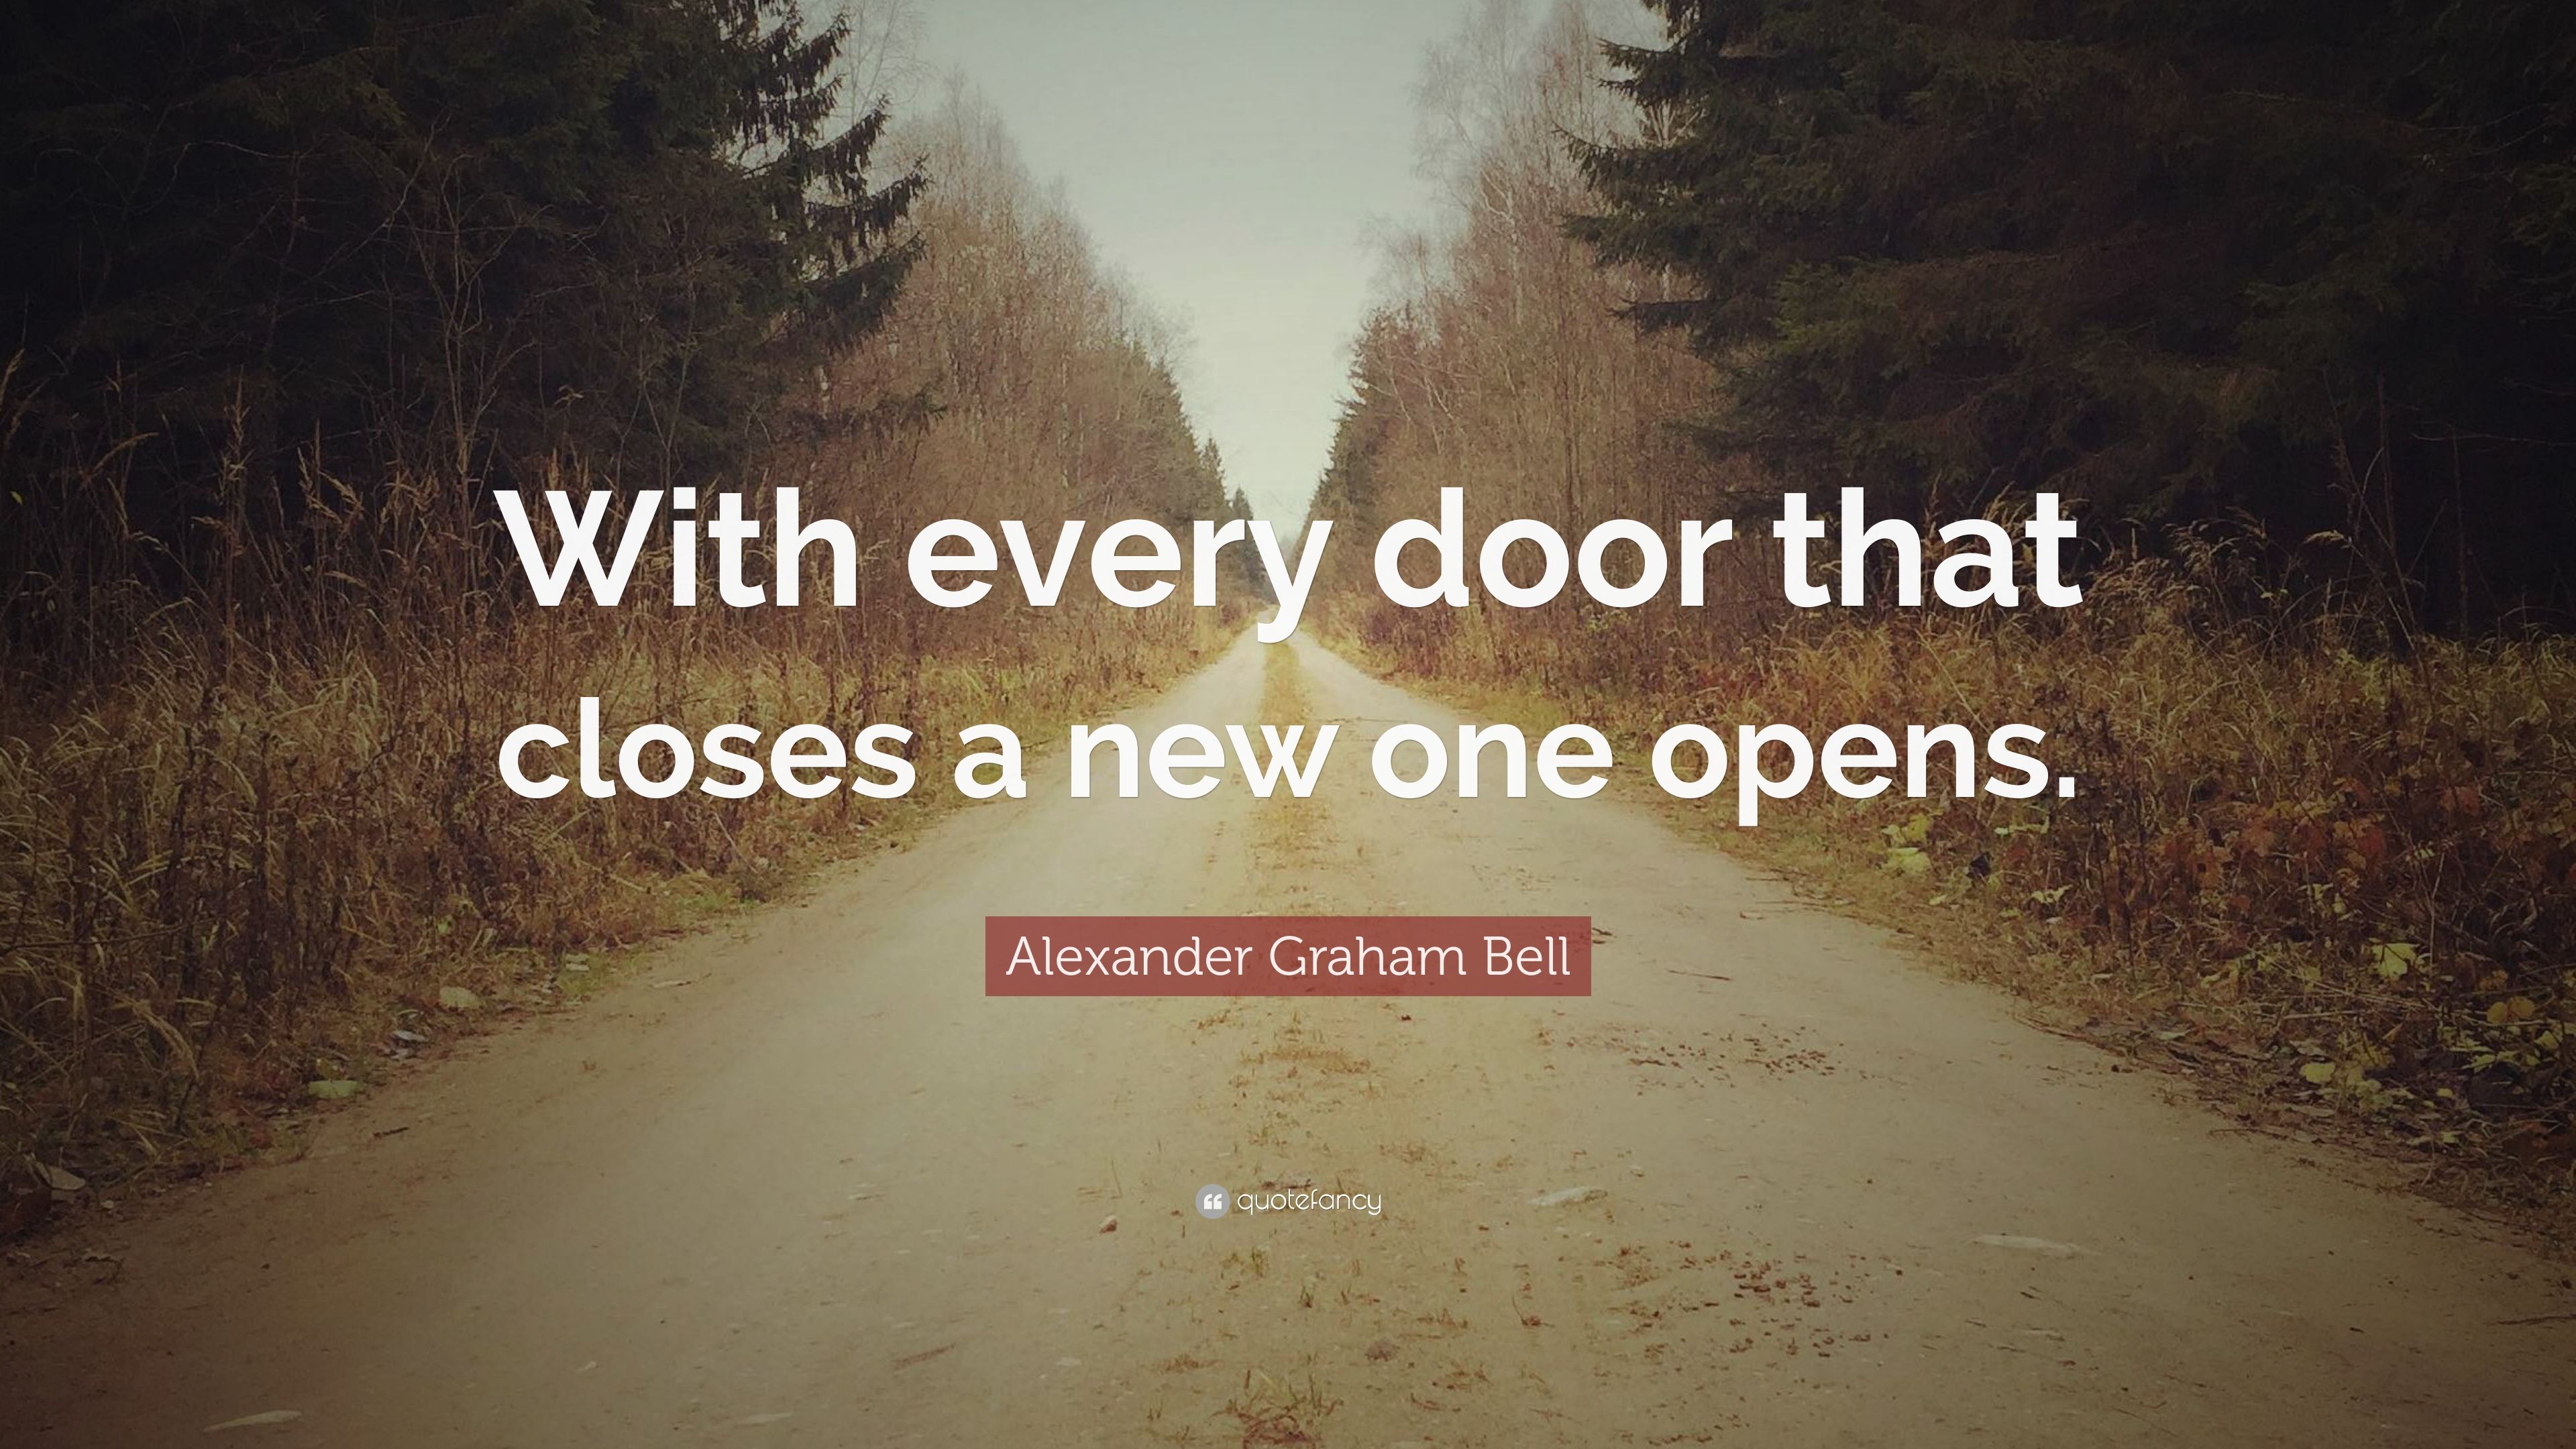 Alexander Graham Bell Quotes 5